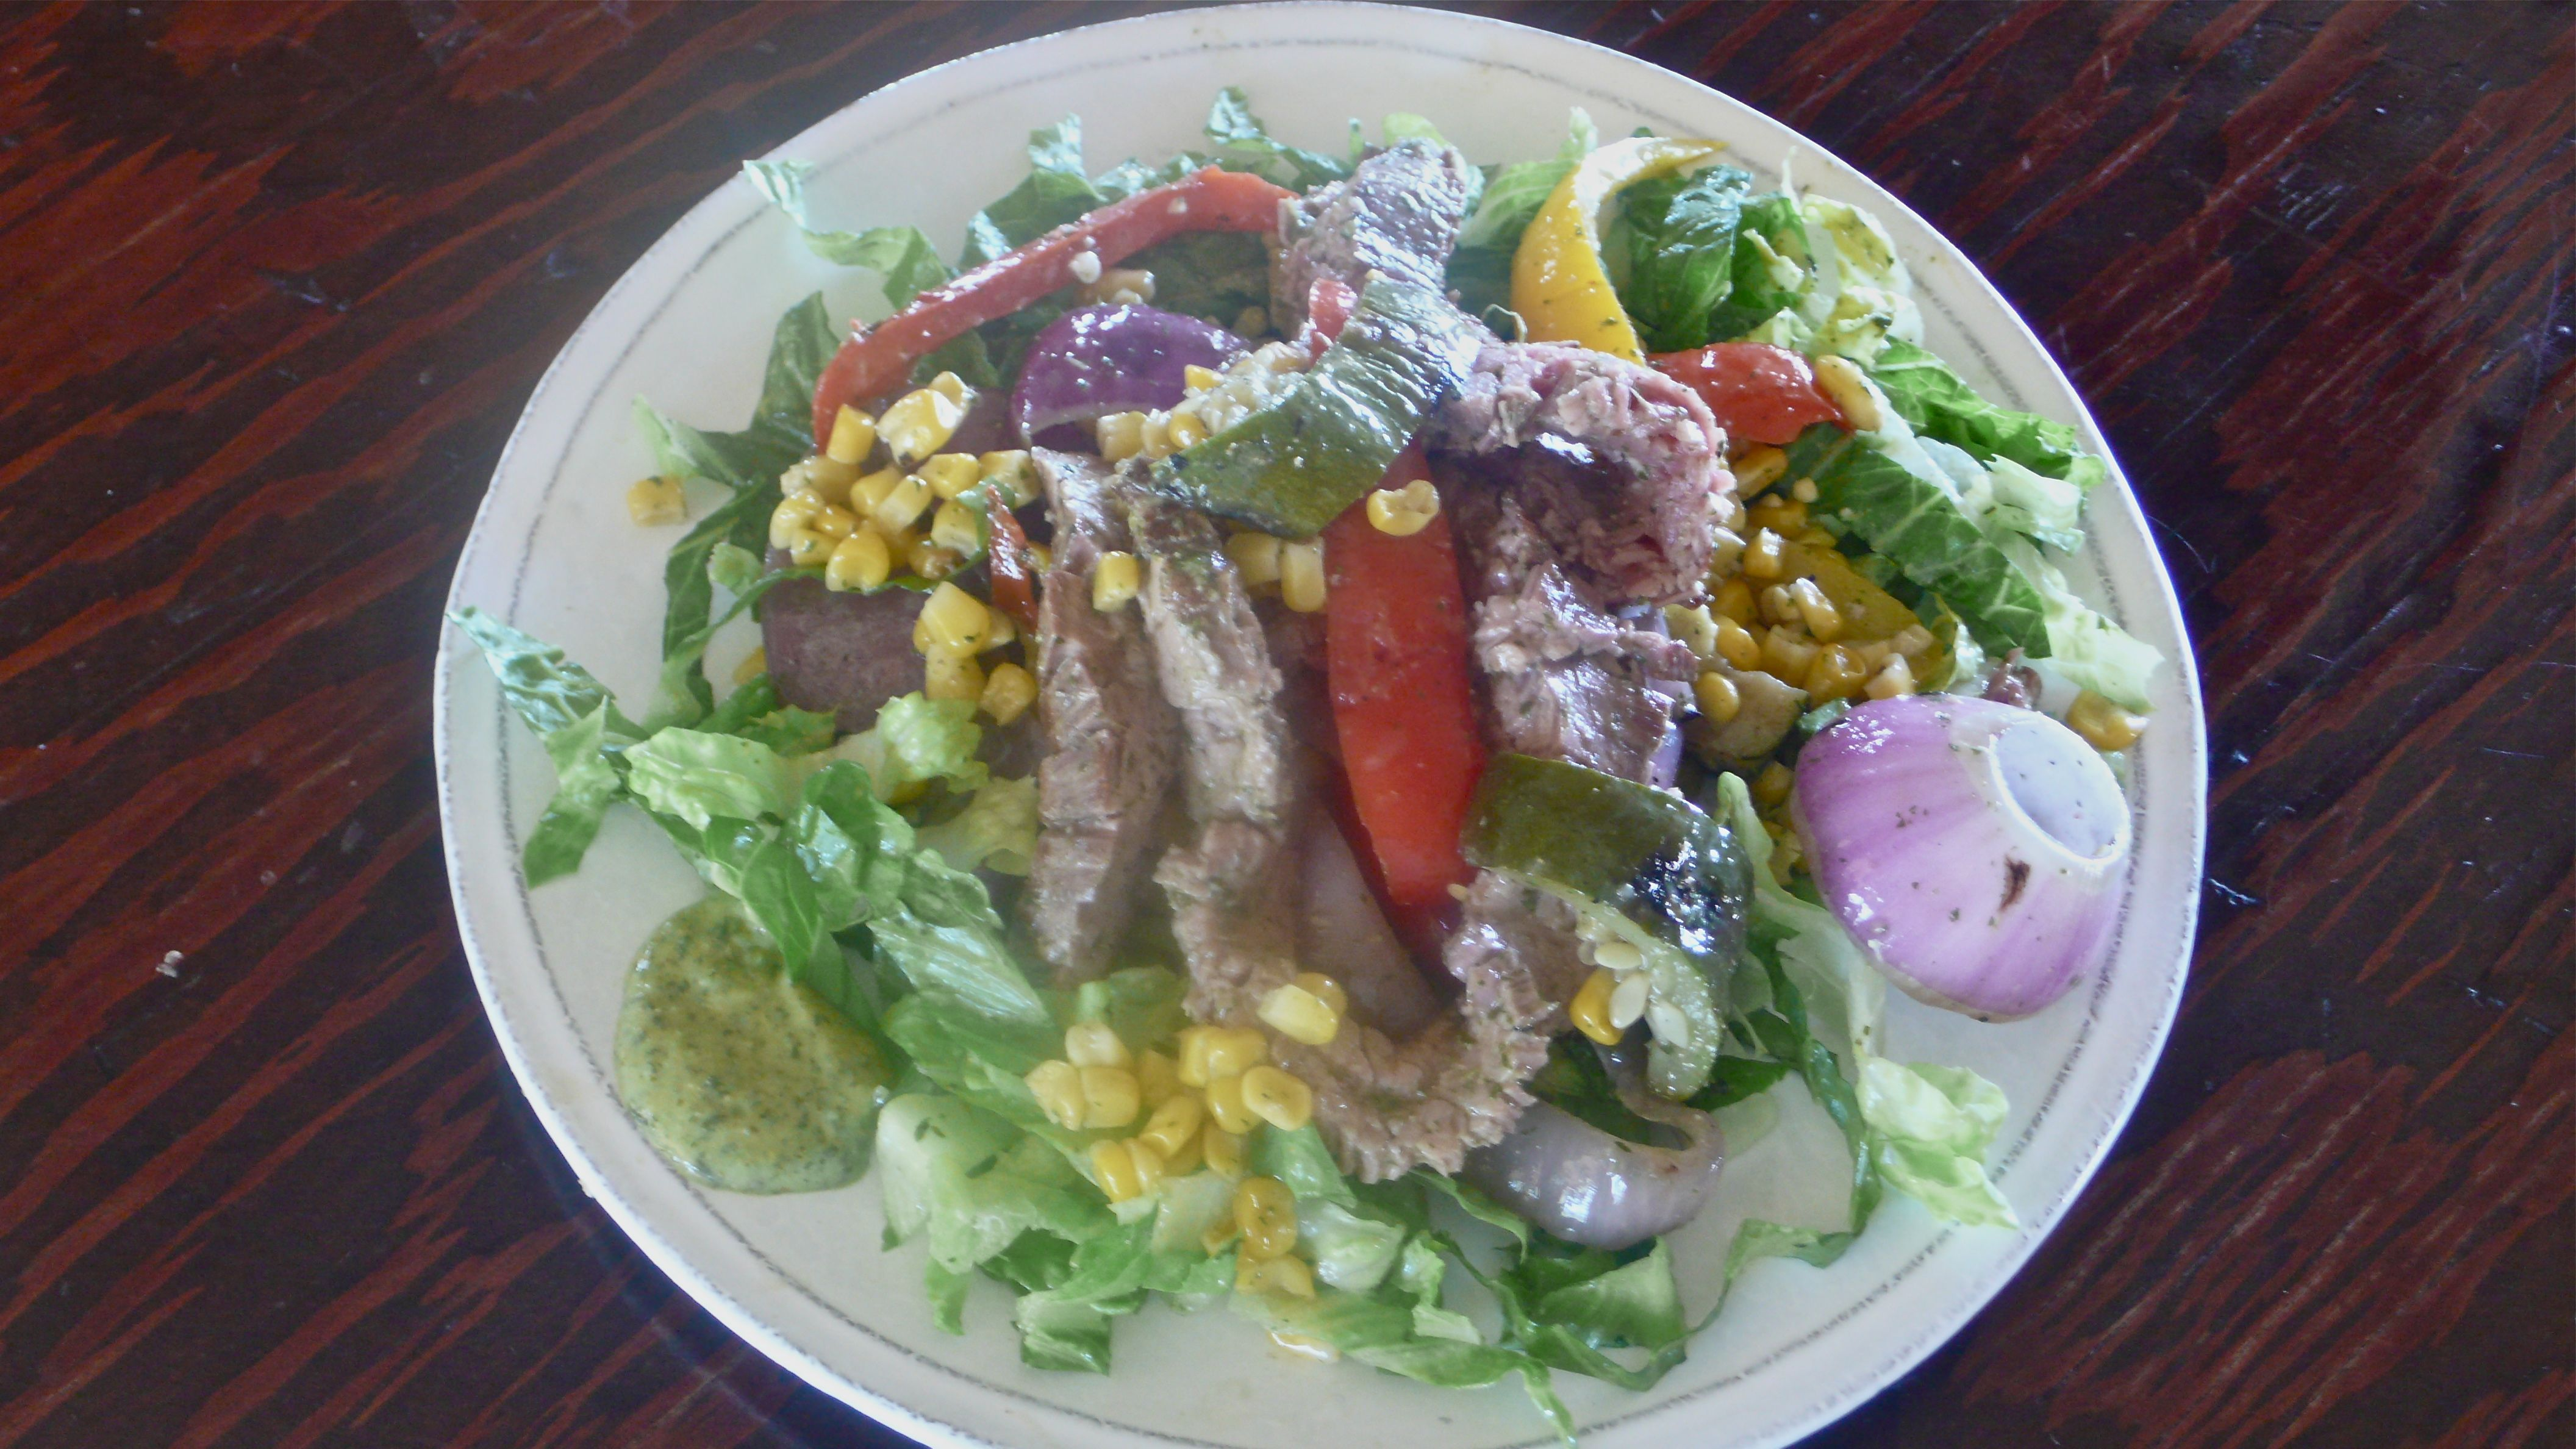 BBQ Vegetable and Beef Salad